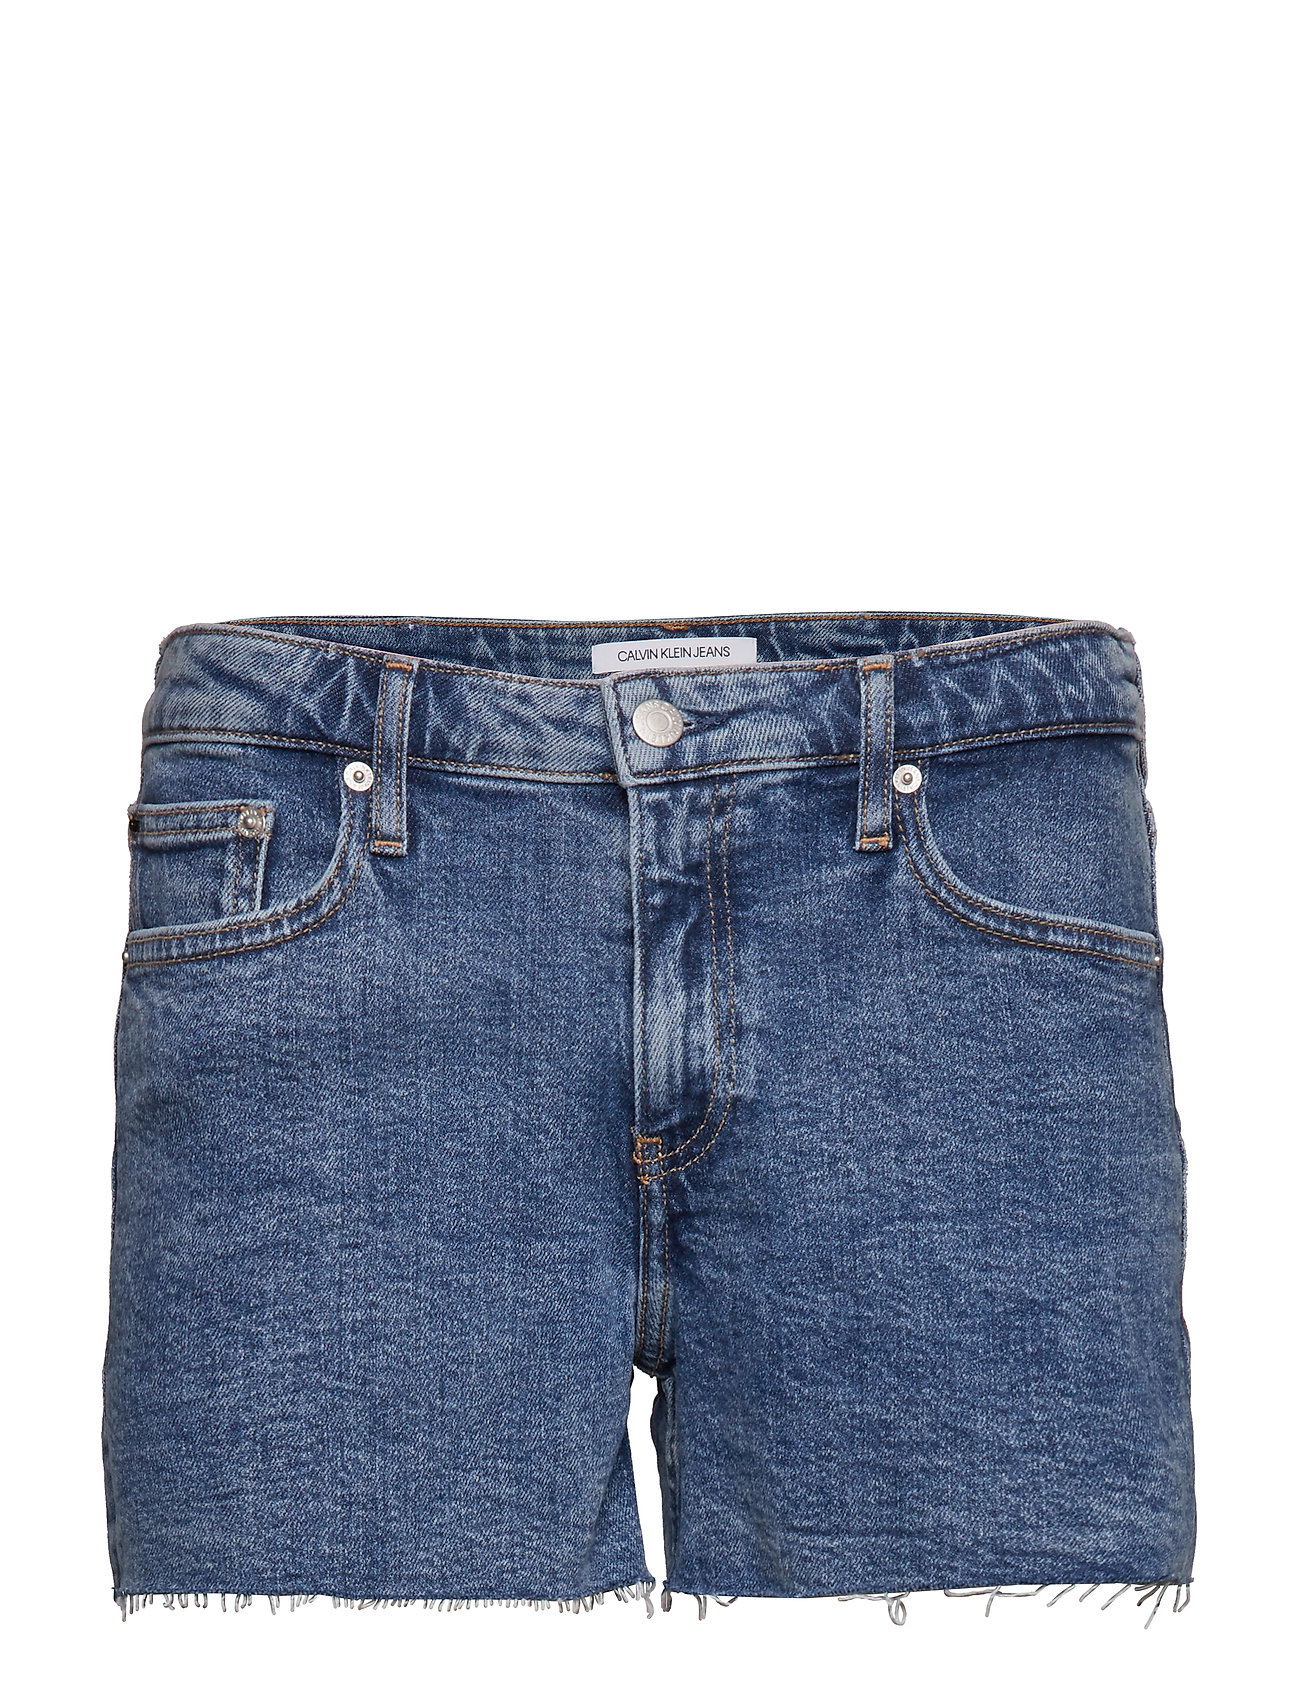 Calvin Klein Jeans MID RISE WEEKEND SHO - ICONIC MID STONE RAW EMBROIDER